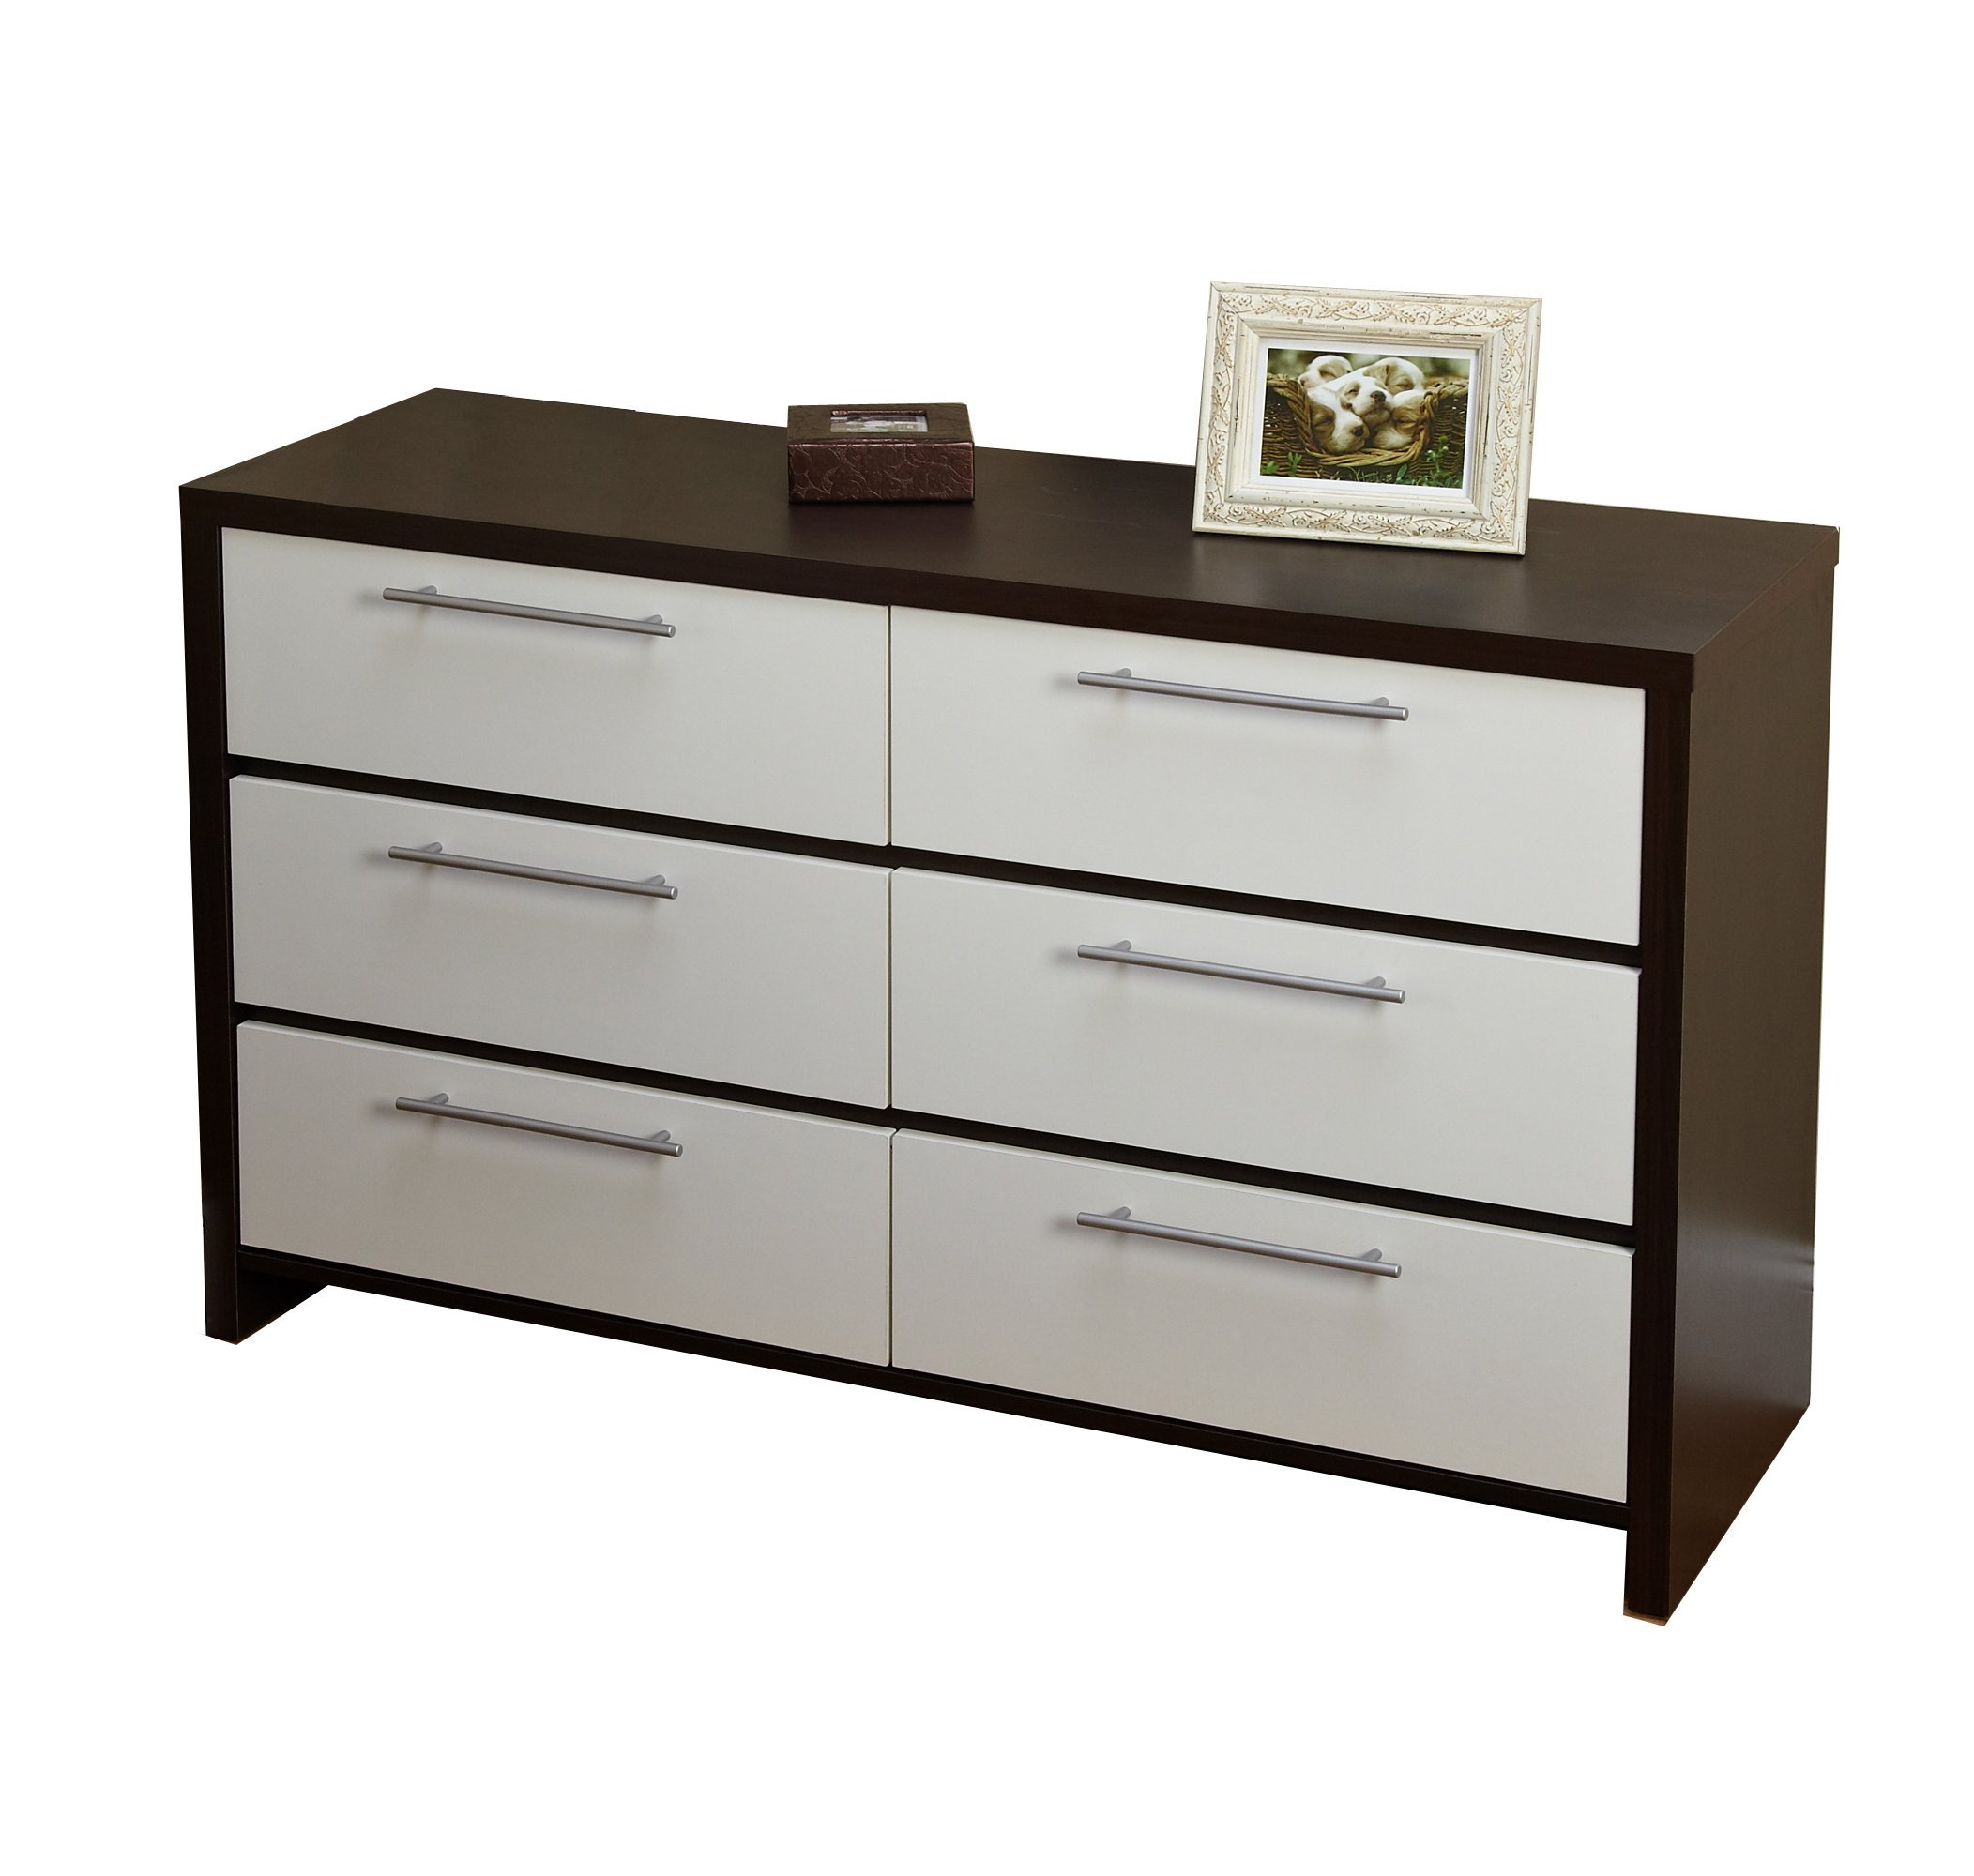 Target Marketing Systems Contemporary 6 Drawer Accent Chest, Espresso/White